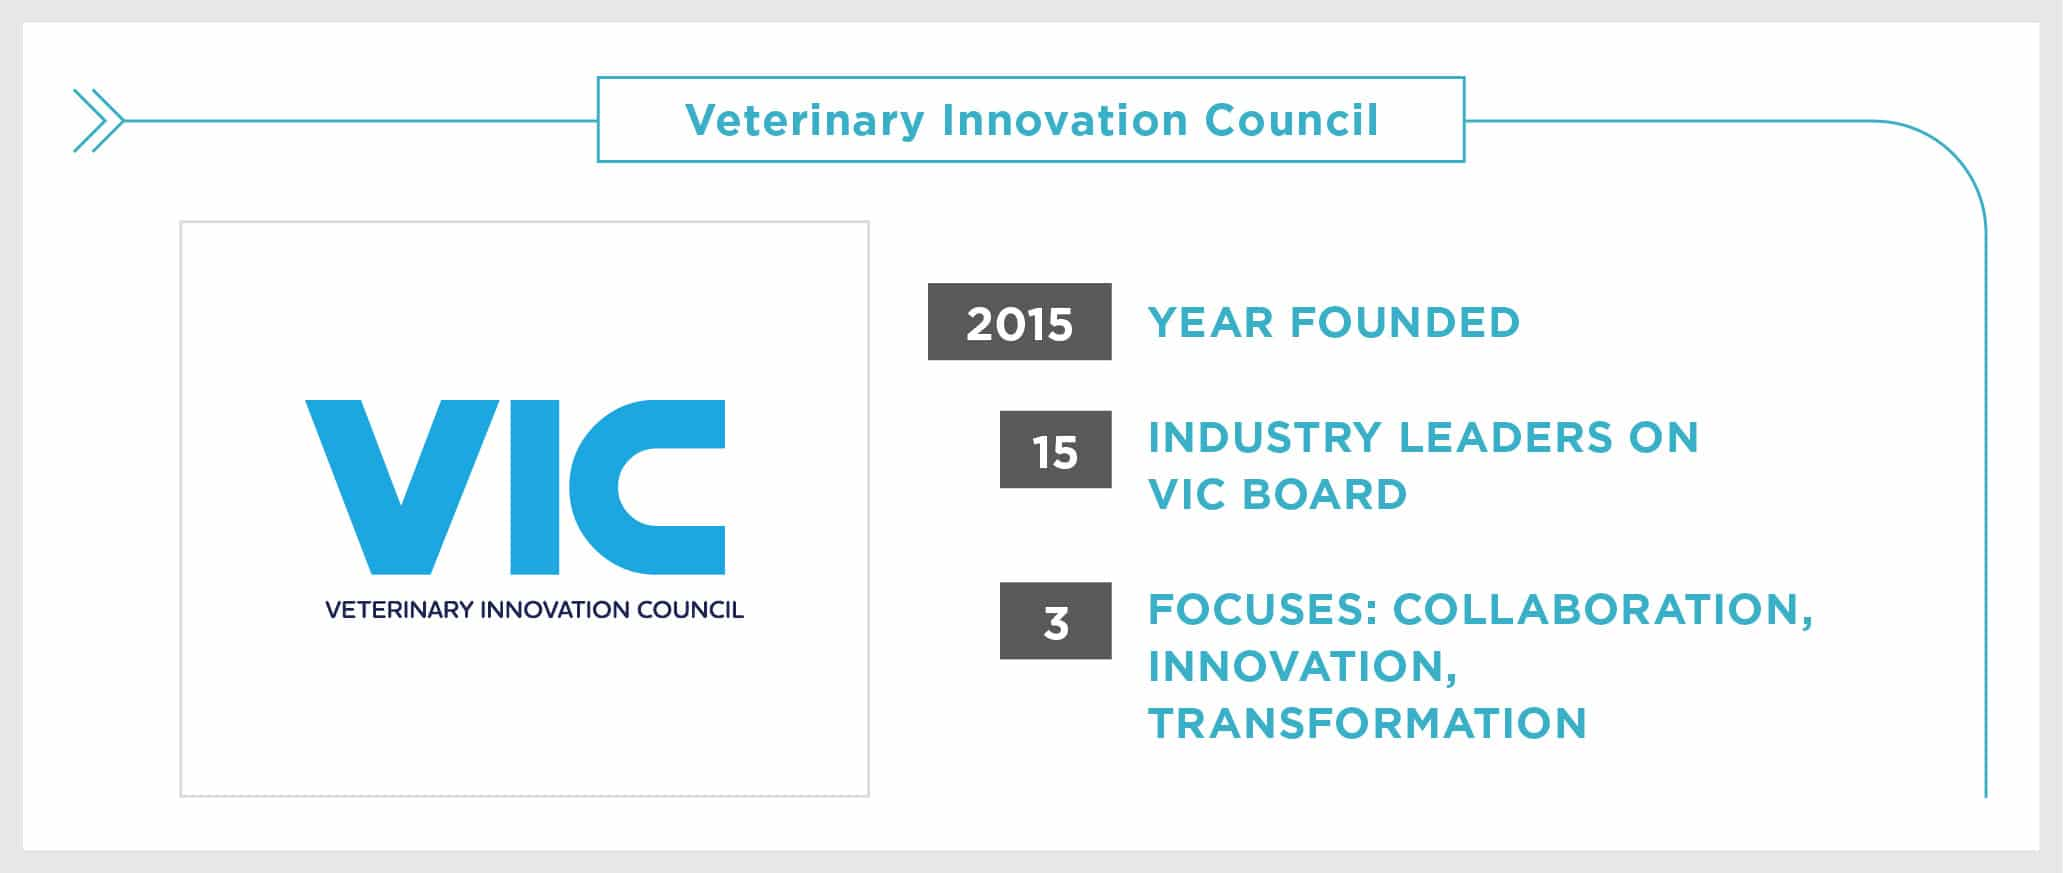 Vision Statement: Veterinary Innovation Council